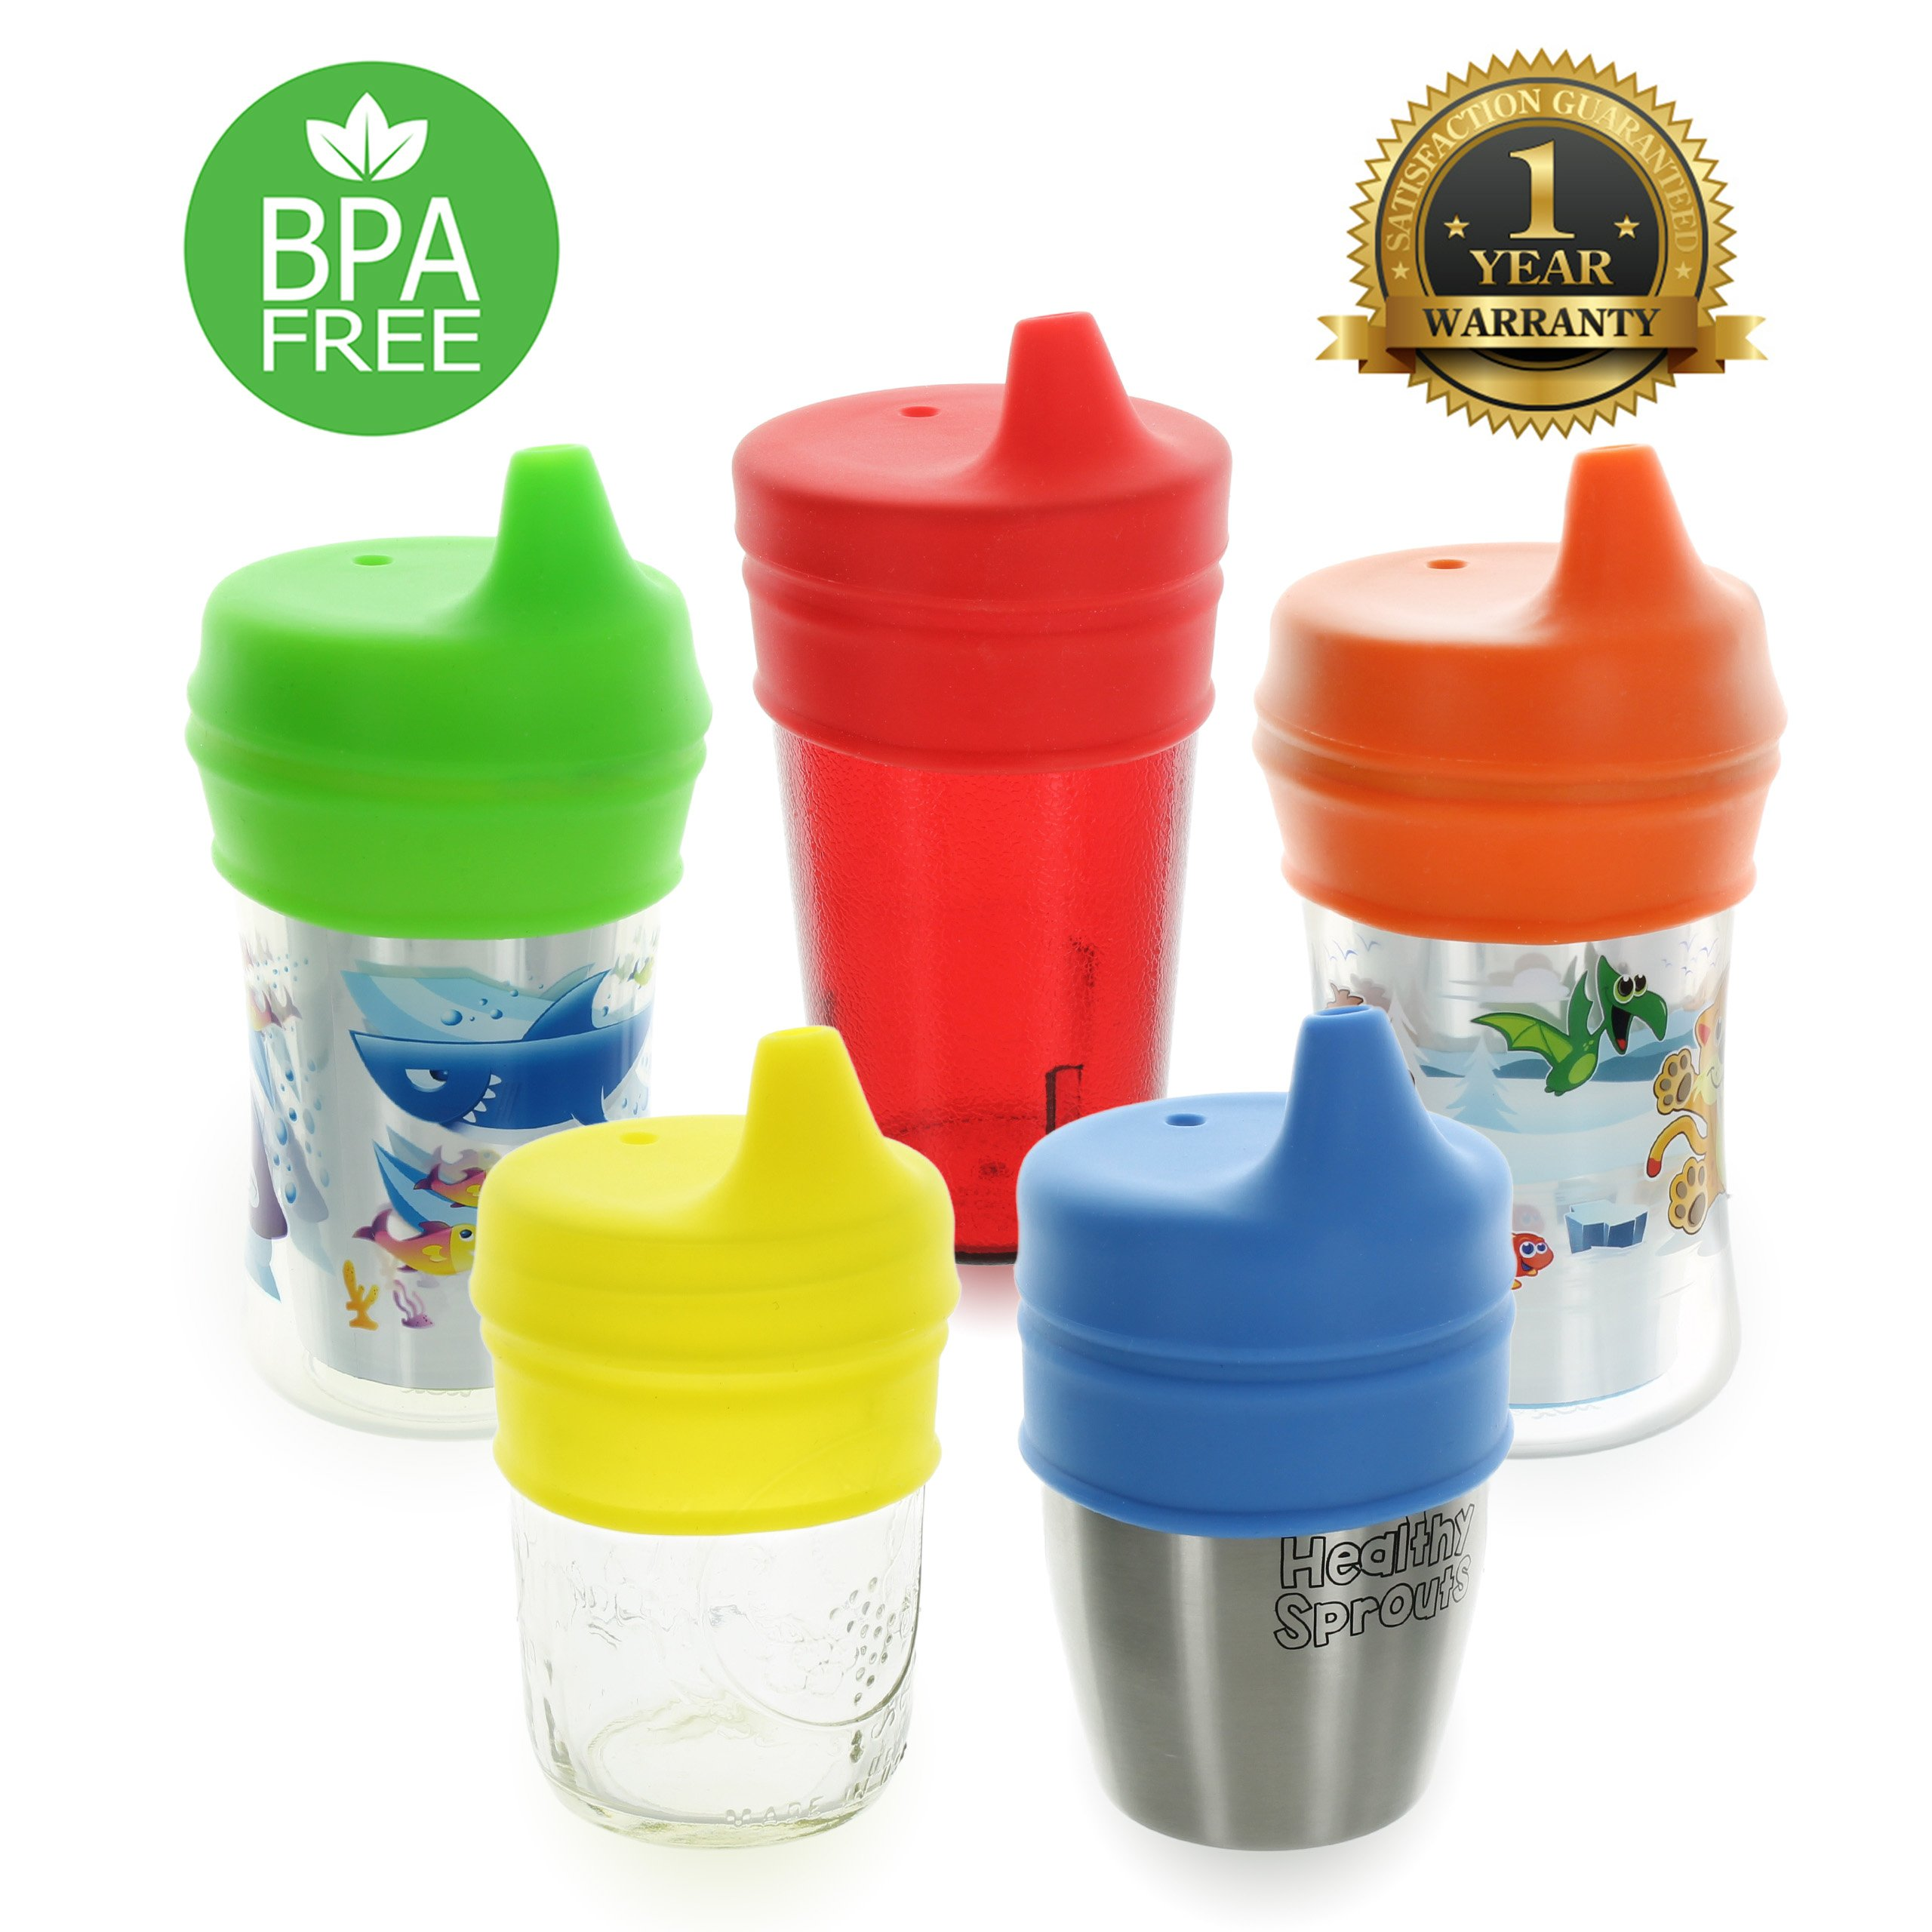 Healthy Sprouts Silicone Sippy Lids (5 Pack) - Lab Tested, Spill Proof, BPA Free, Universal Soft Spout Stretch Tops | Make Any Cup a Sippy Cup for Toddler, Baby, Infant (Red Yellow Blue)